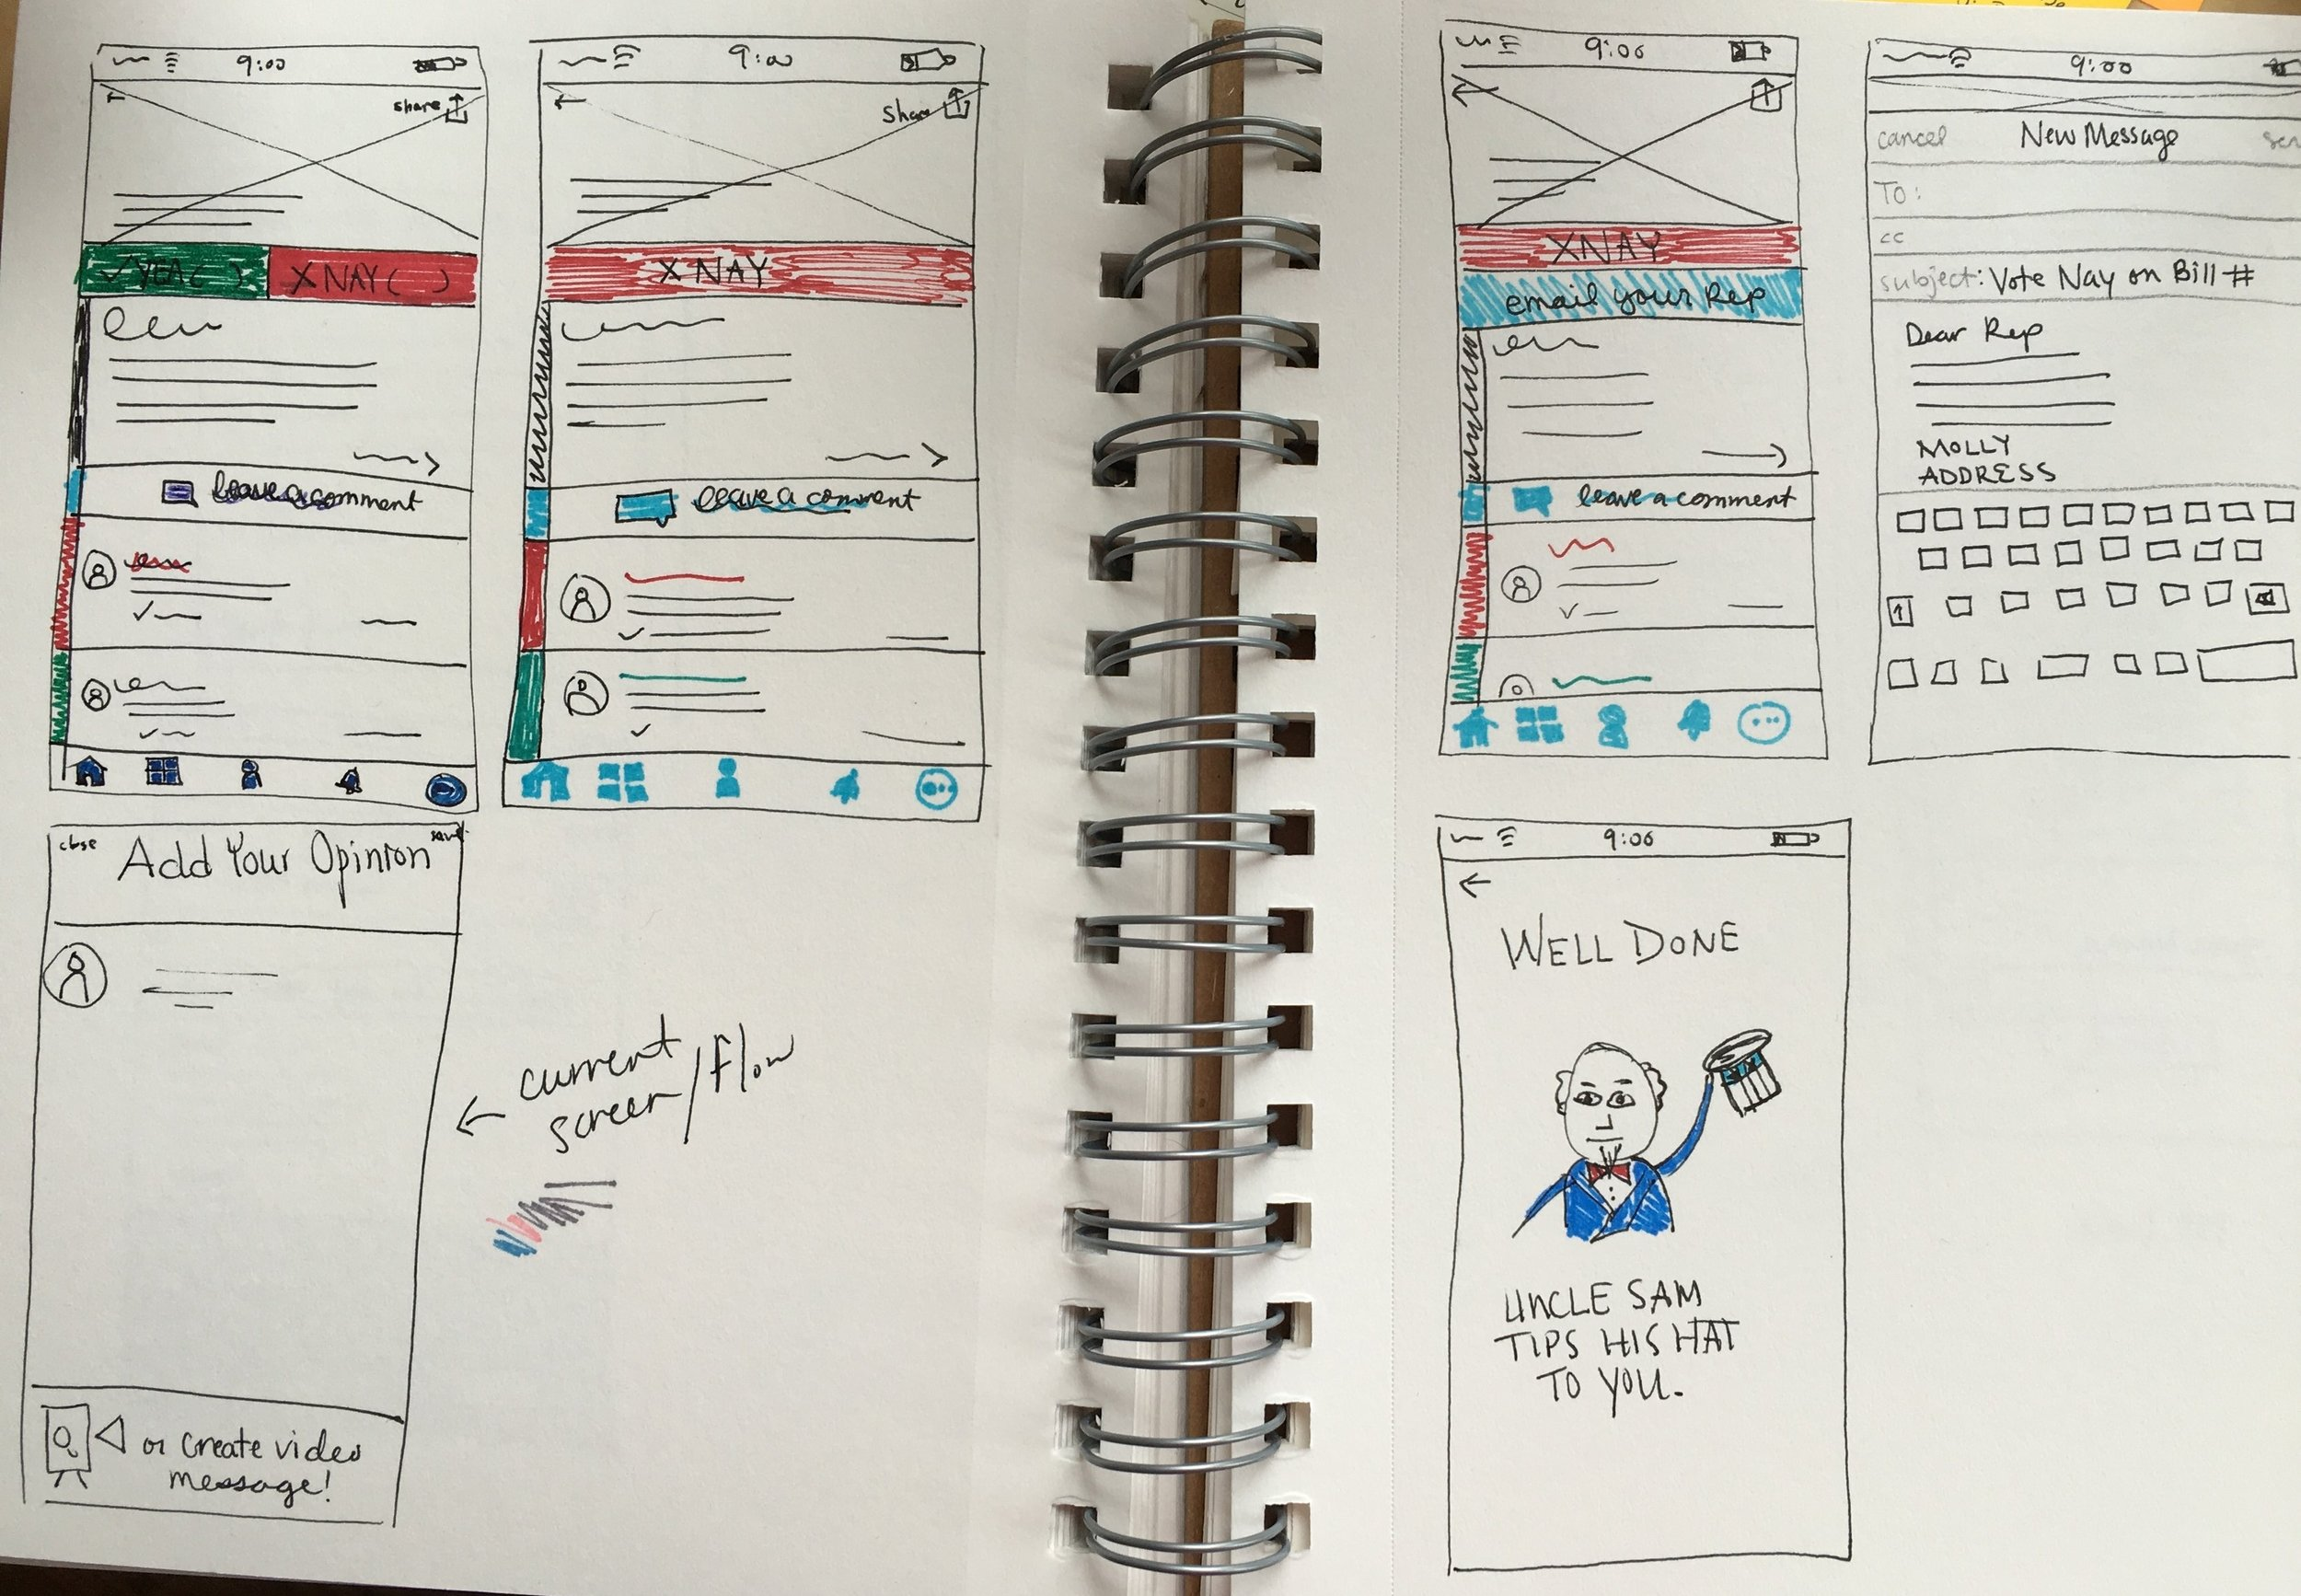 Sketching a flow from voting, to emailing your Rep, to submitting.